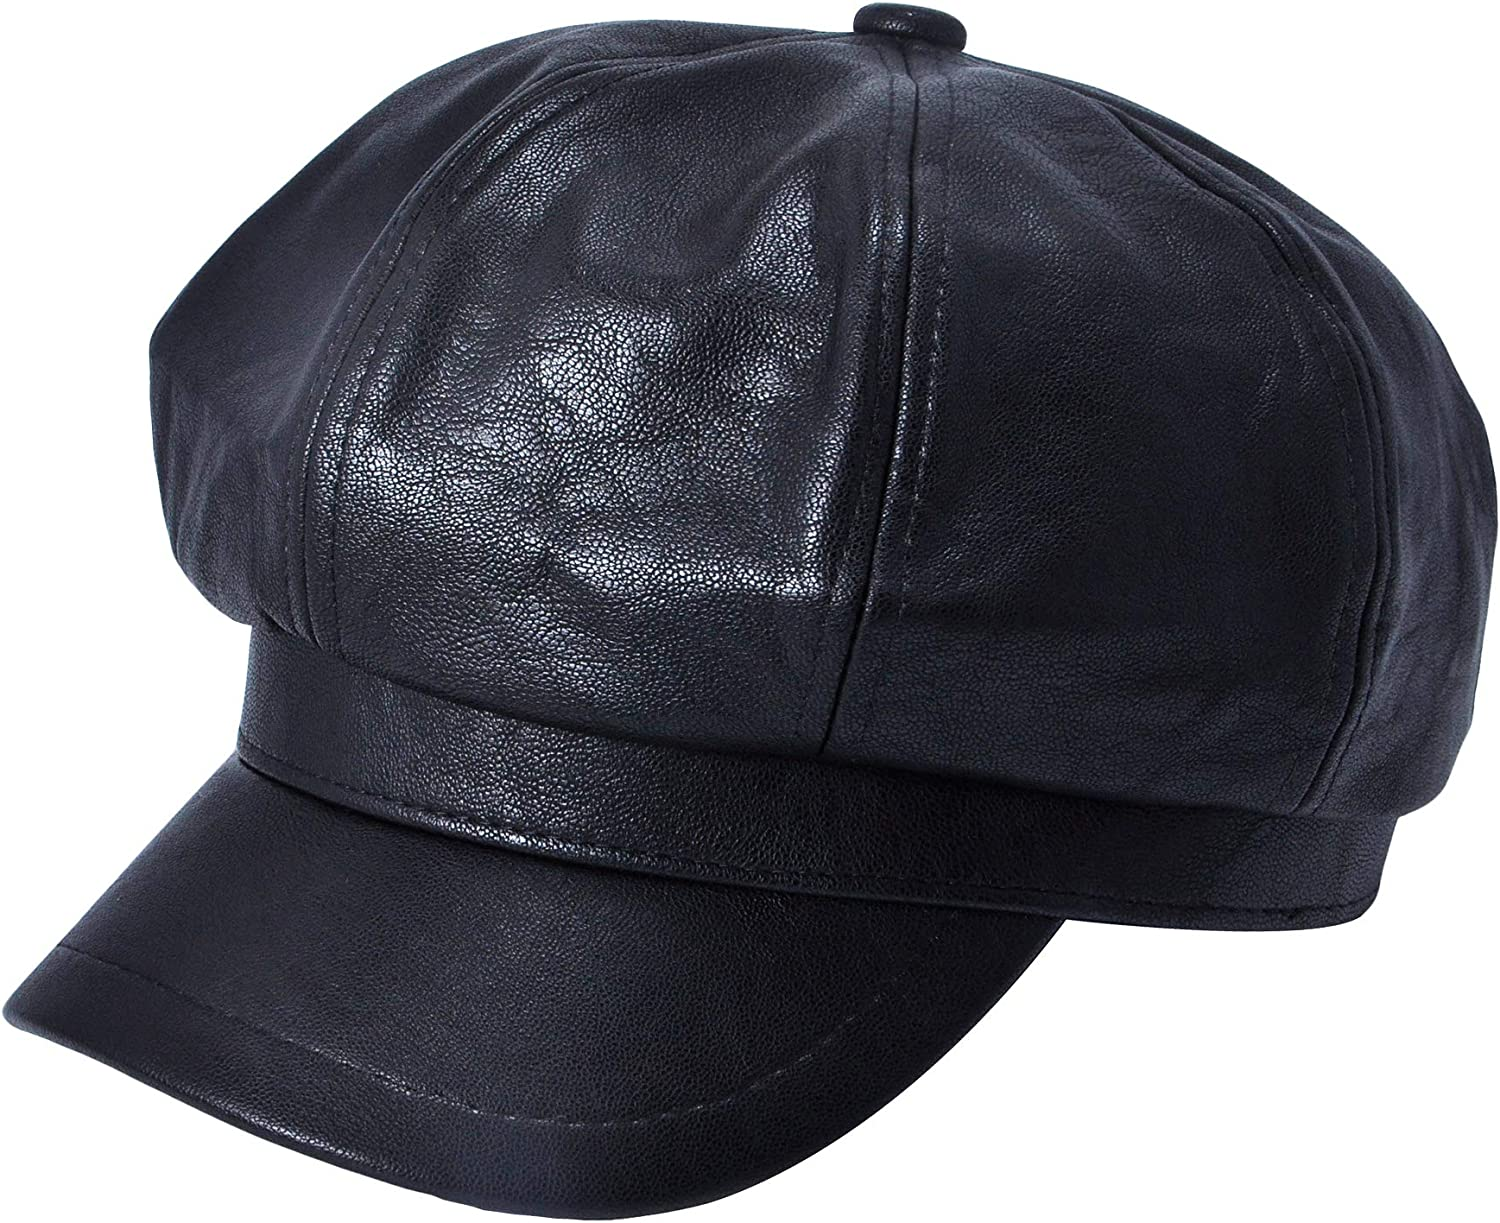 ZLYC Womens PU Leather Newsboy Caps Hat Cabbie Spring new work one after Elegant another for Girls Gatsby